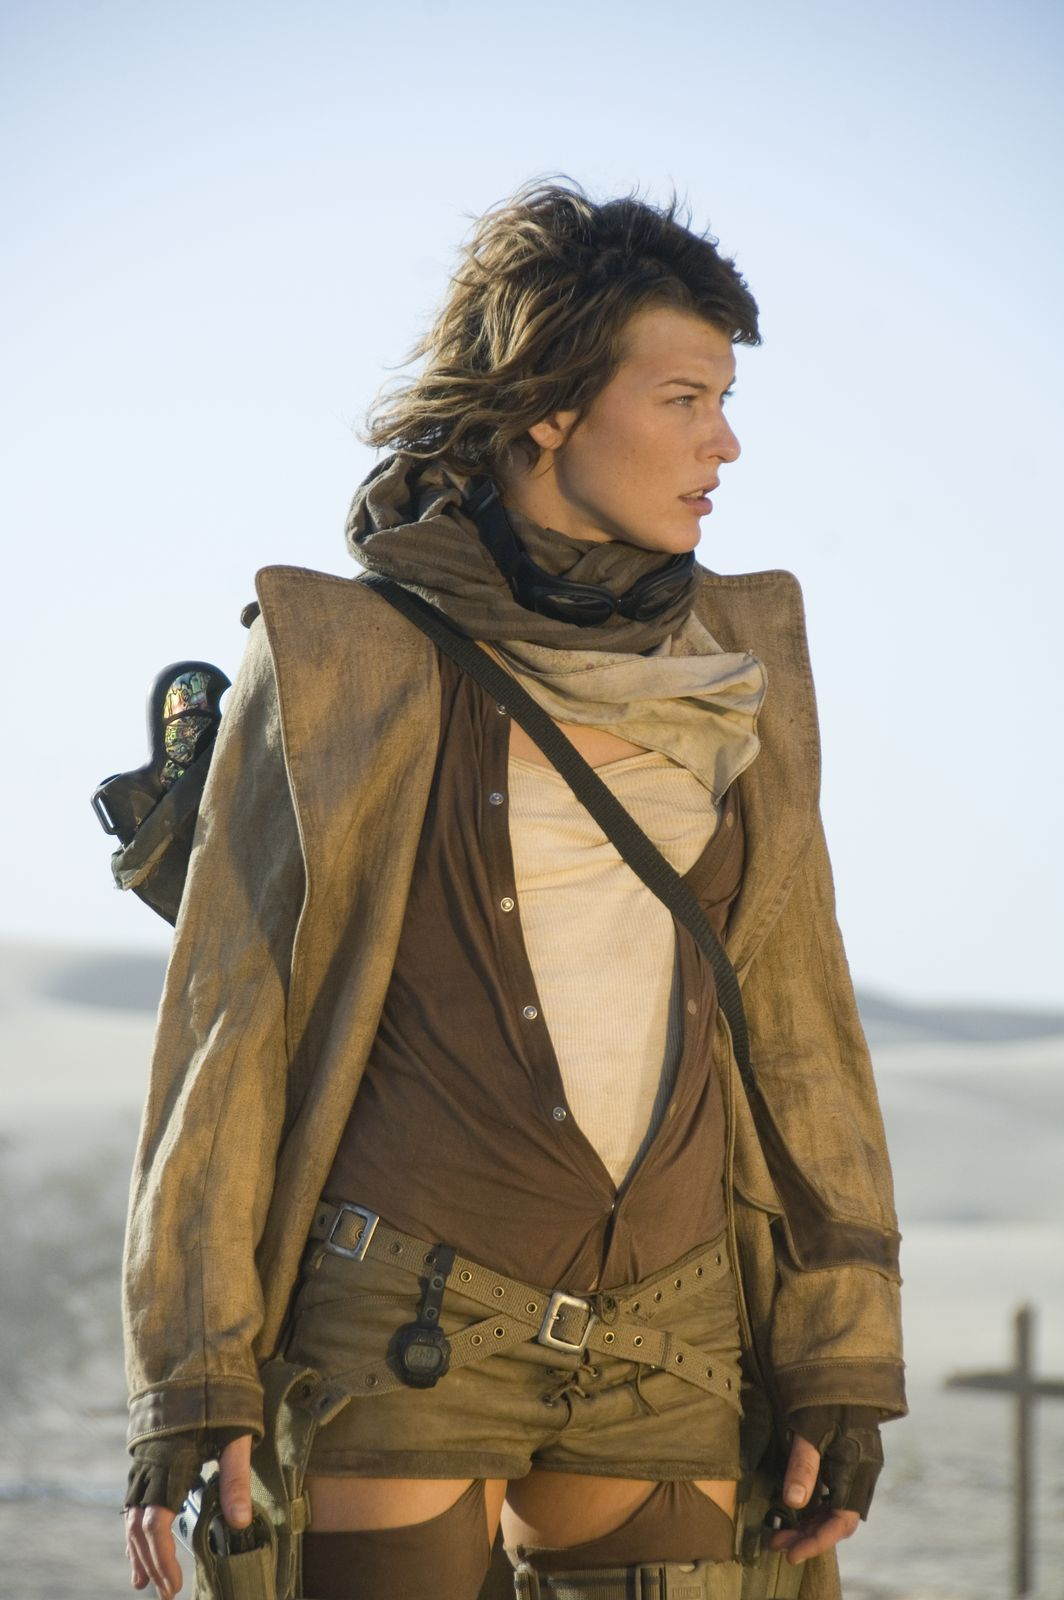 Resident Evil Extinction Clean Post Apocalyptic Look